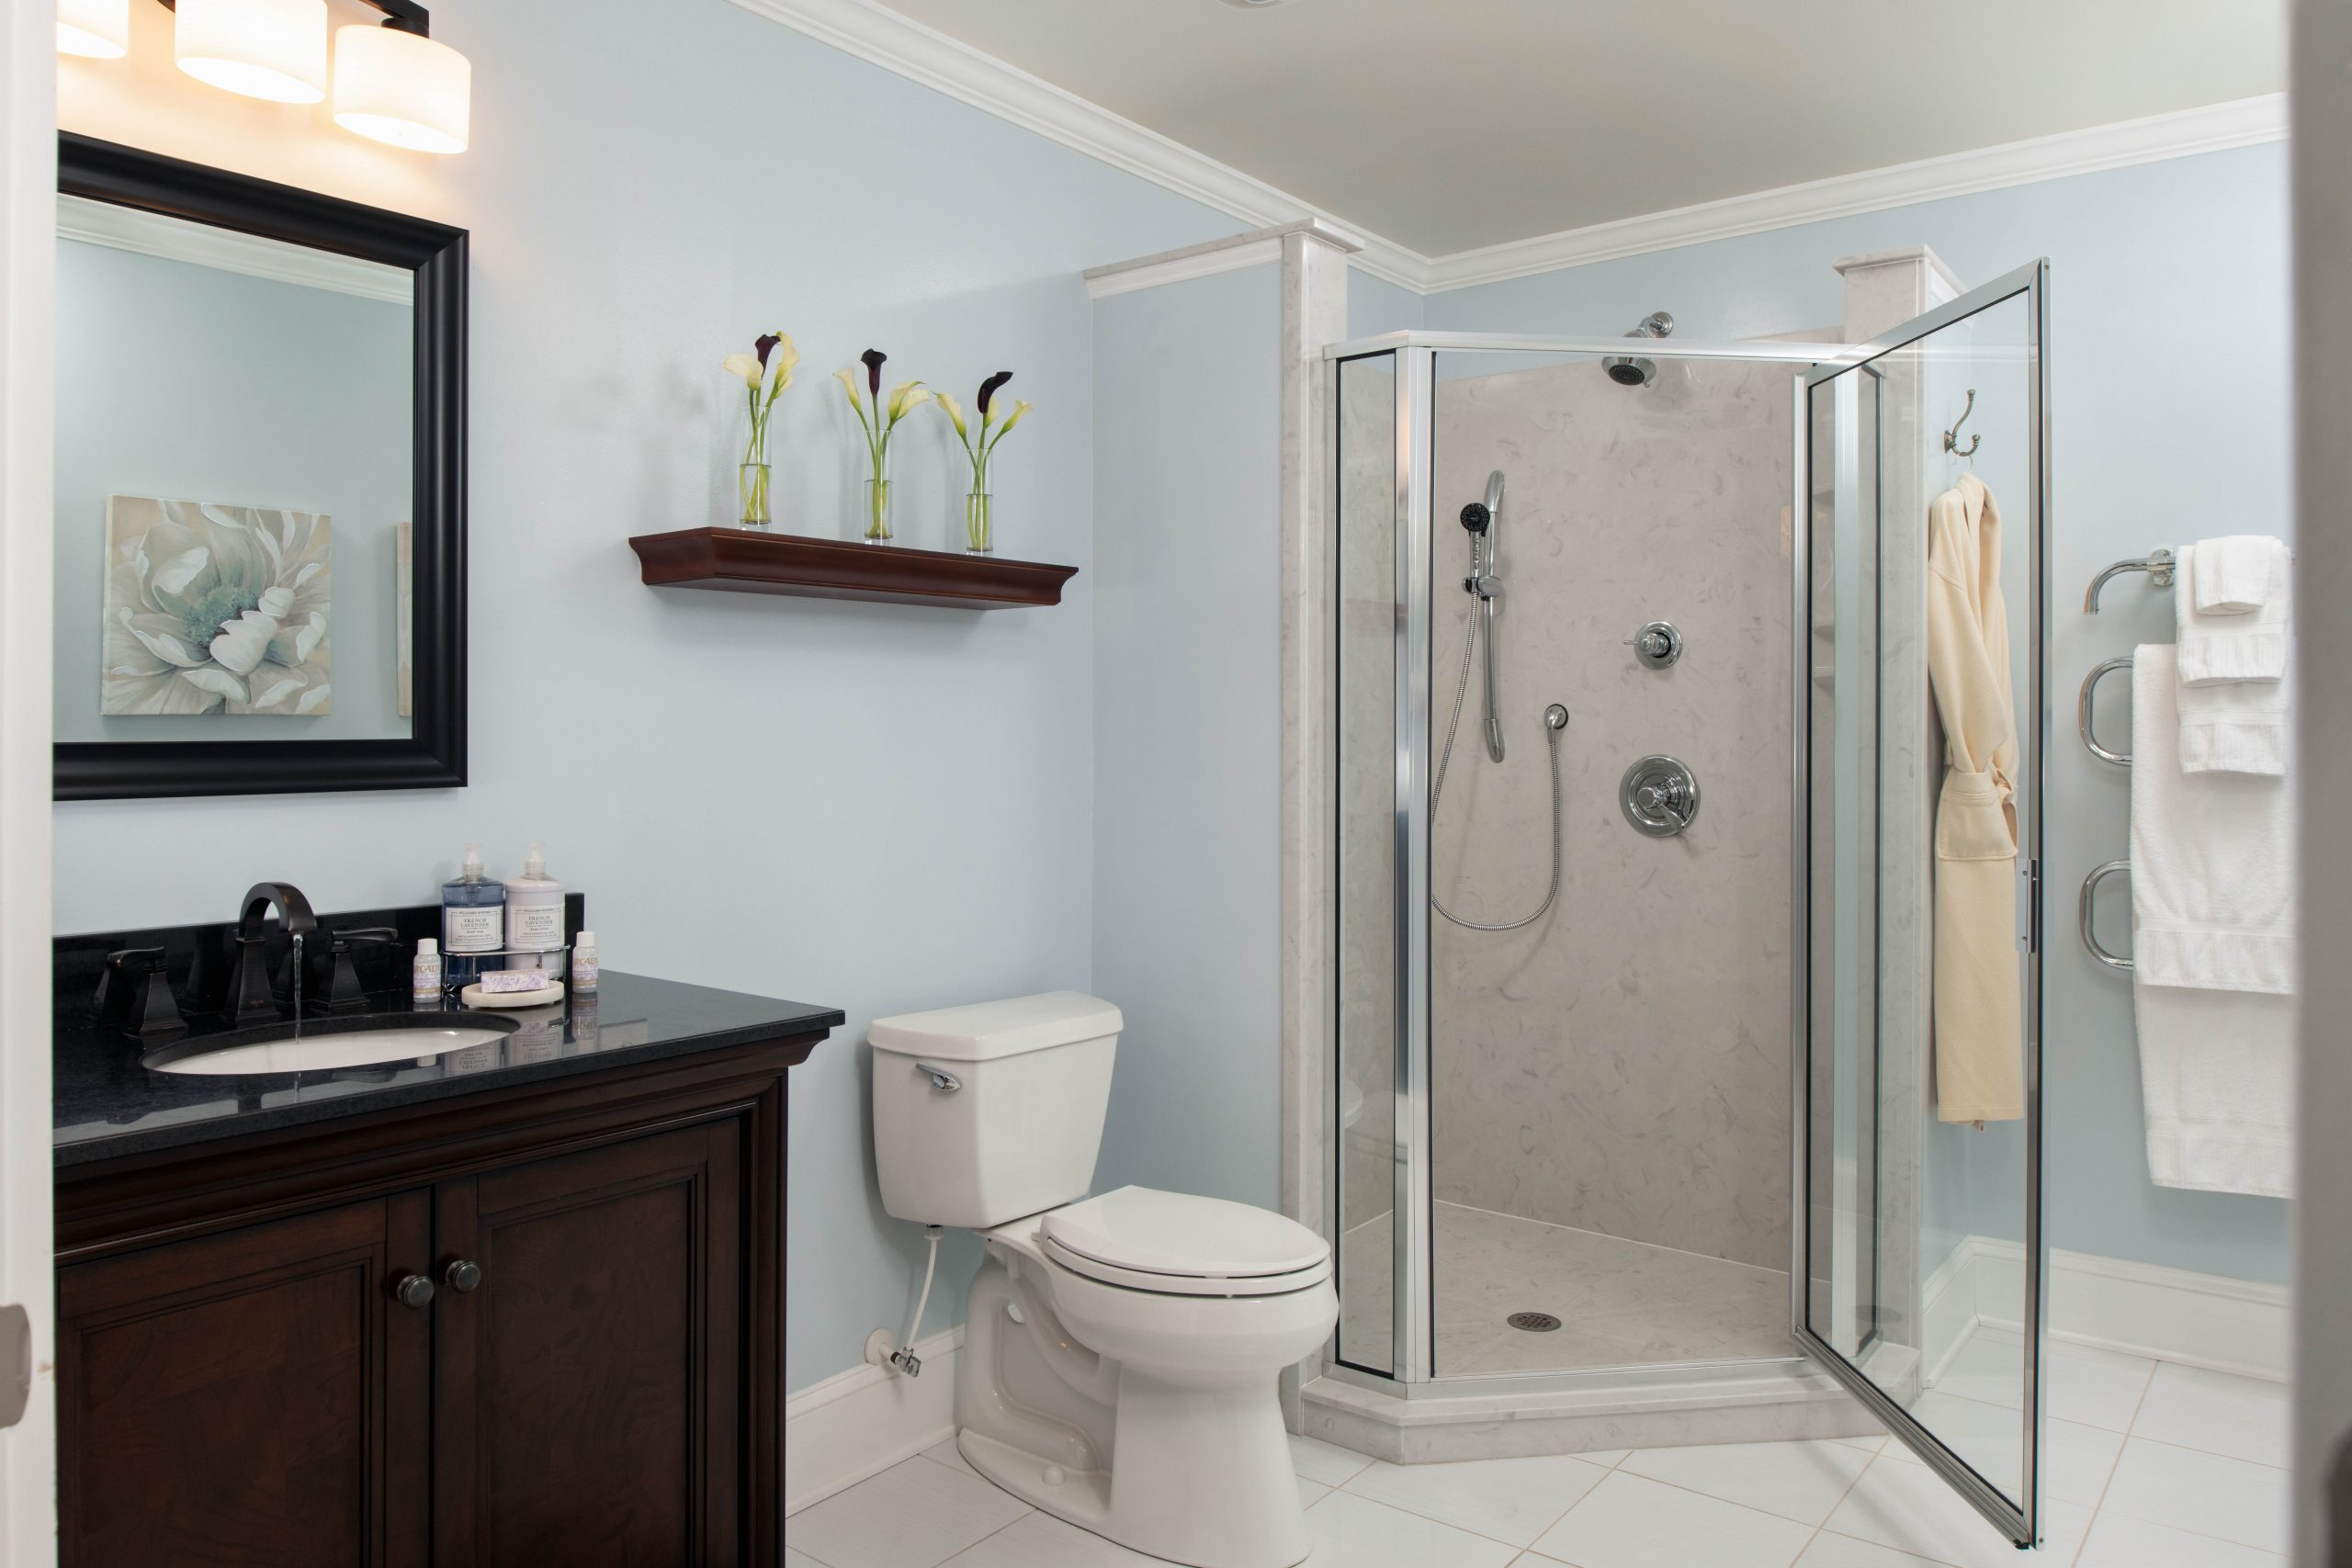 Arcady's Madison Suite bathroom with light blue walls, white tile, walk-in shower, and dark vanity with mirror.jpg